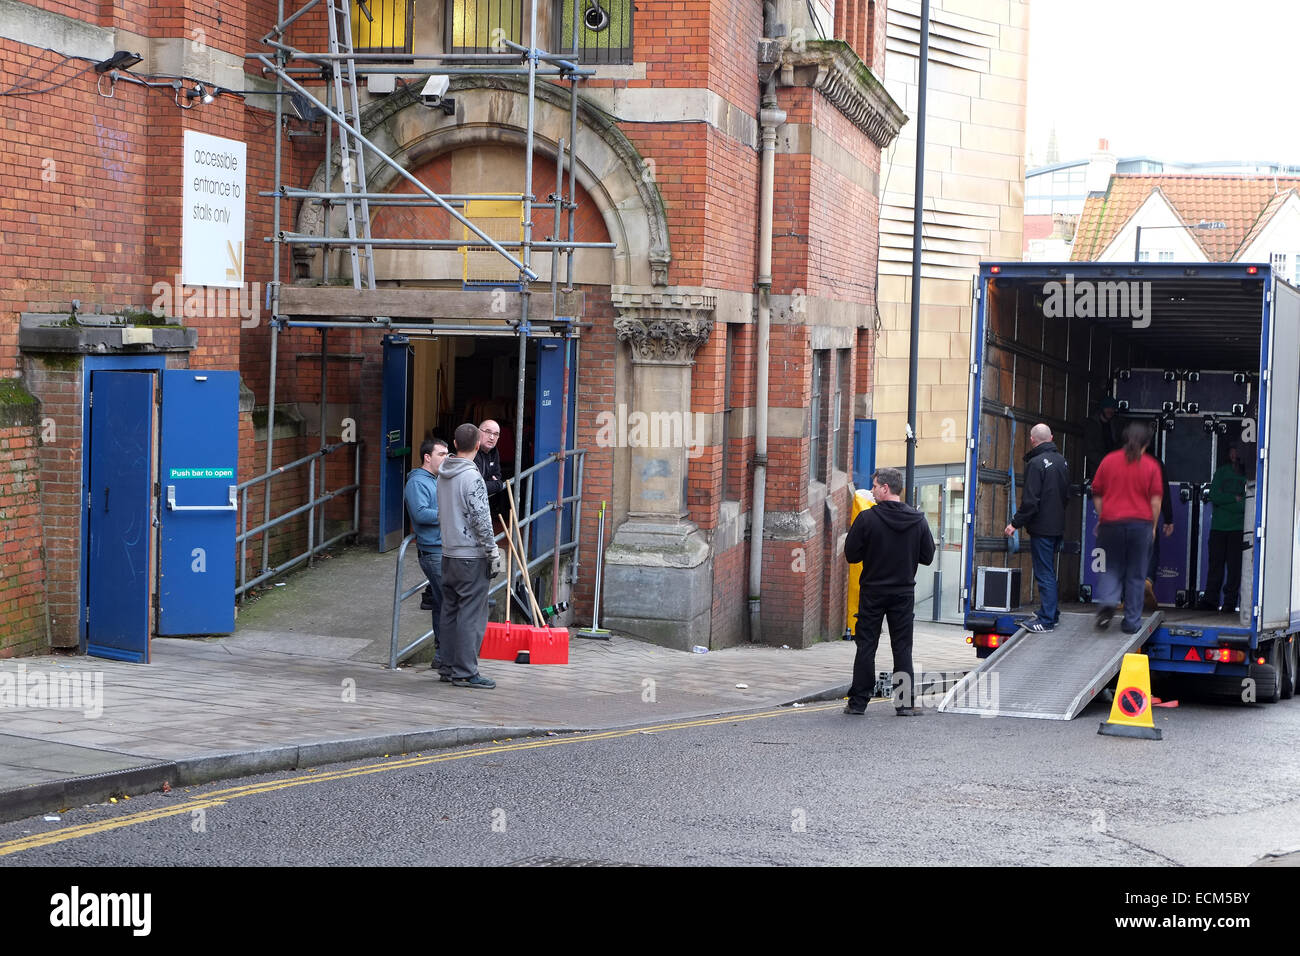 Loading a truck after the performance at the rear of The Colston Hall, from Trenchard Street, in Bristol, 10th December - Stock Image